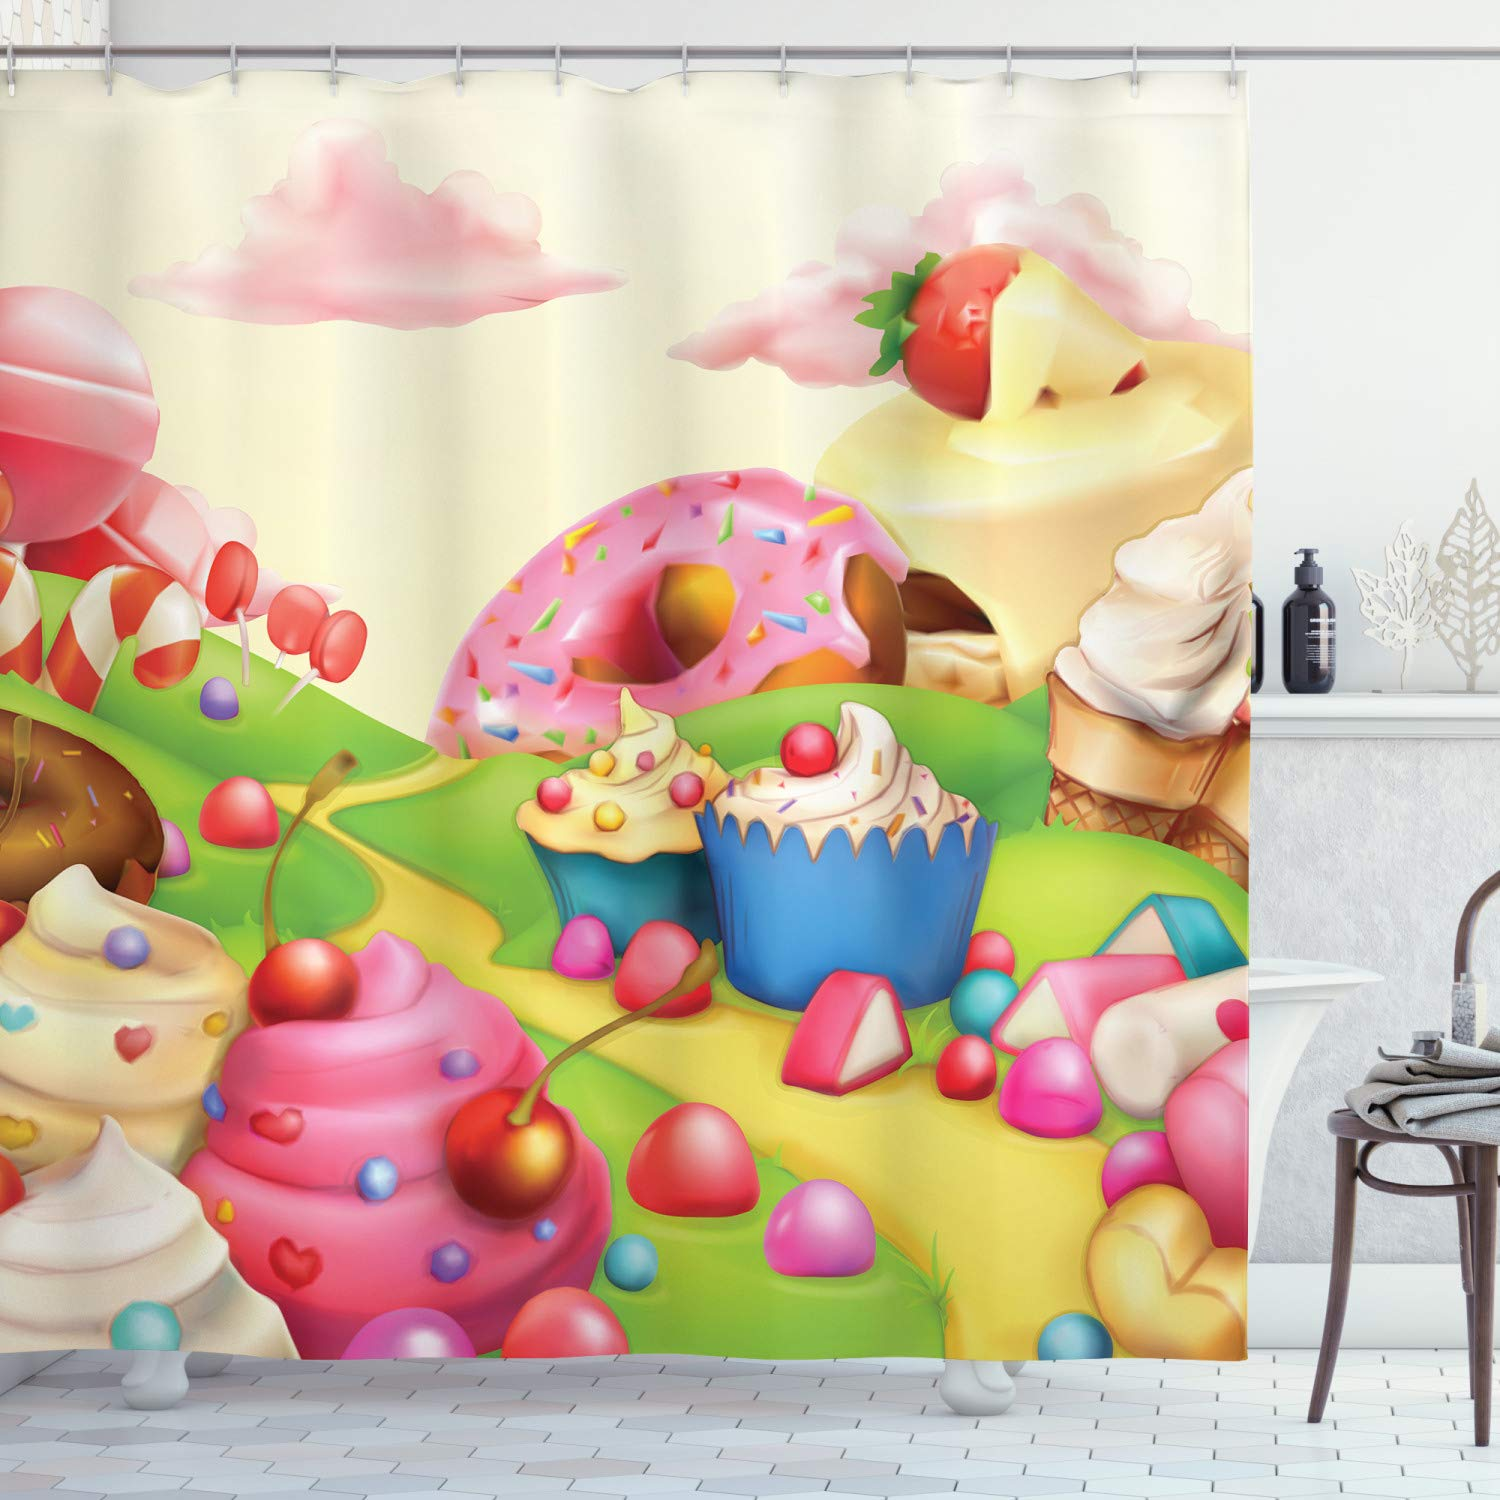 Ambesonne Modern Shower Curtain, Yummy Donuts Land Cupcakes Ice Cream Cotton Candy Clouds Kids Nursery Design, Cloth Fabric Bathroom Decor Set with Hooks, 84'' Extra Long, Cream Pink by Ambesonne